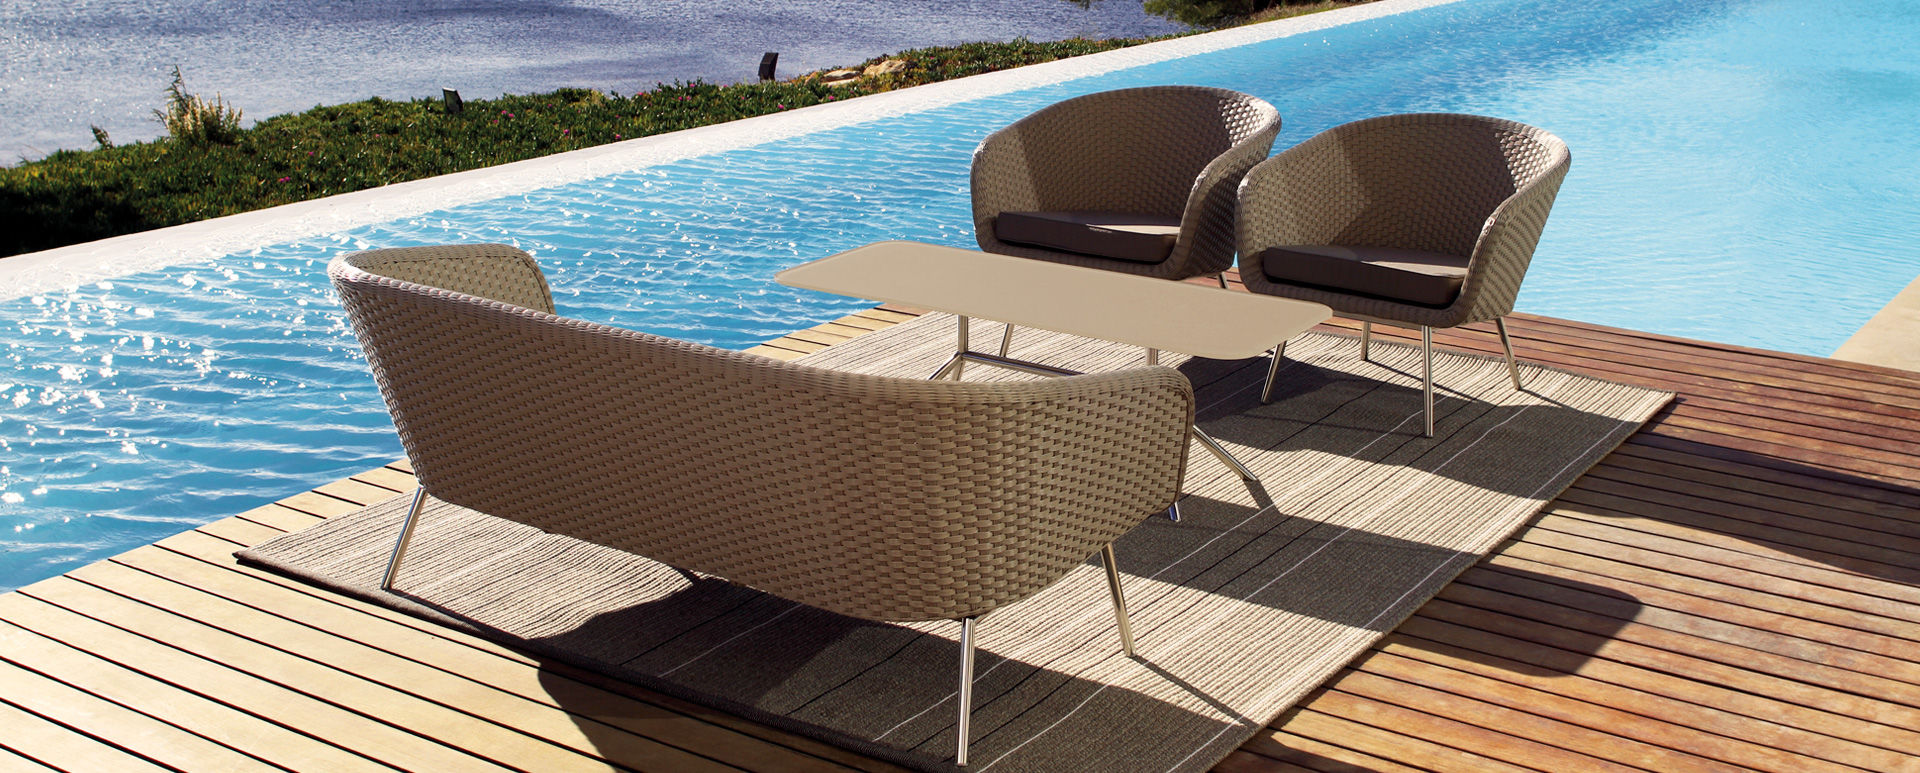 ... Patio Furniture Modular Lounge Collection With Cozy Cushions SHELL  Collection   Contemporary Retro Design Lounge Set ...